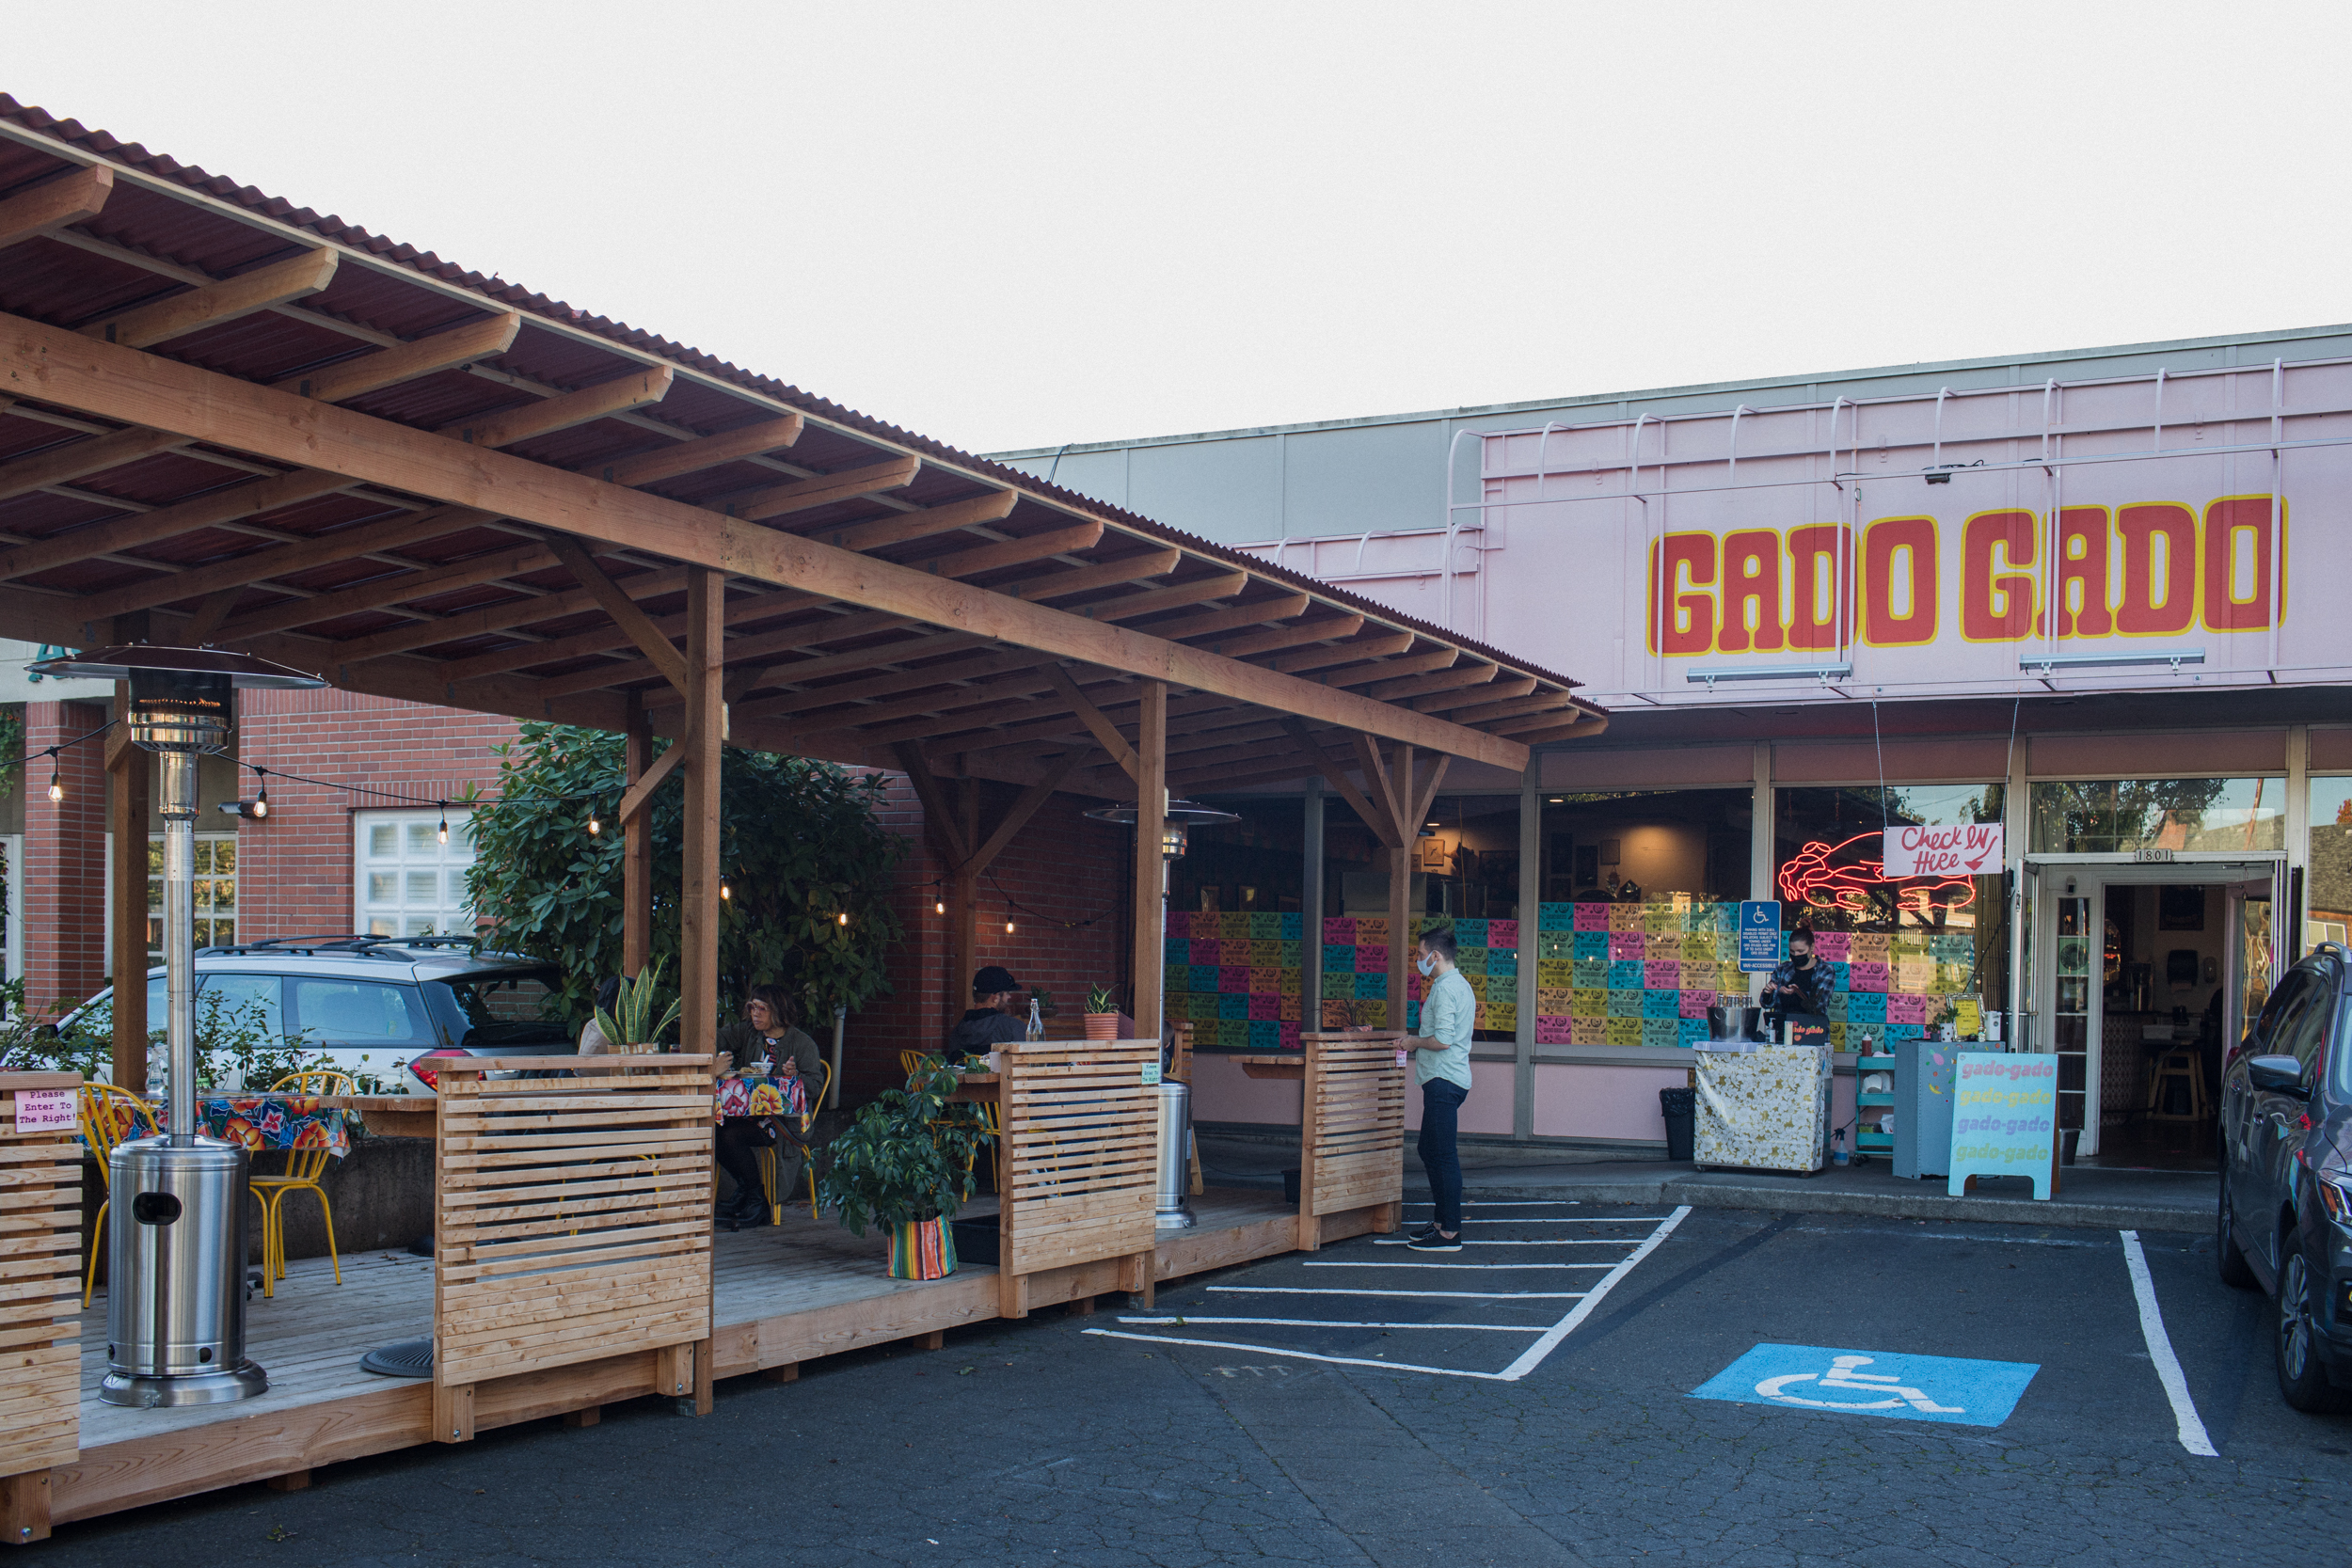 The outside of a restaurant, Gado Gado, with a deck of outdoor seating to the left of the entrance